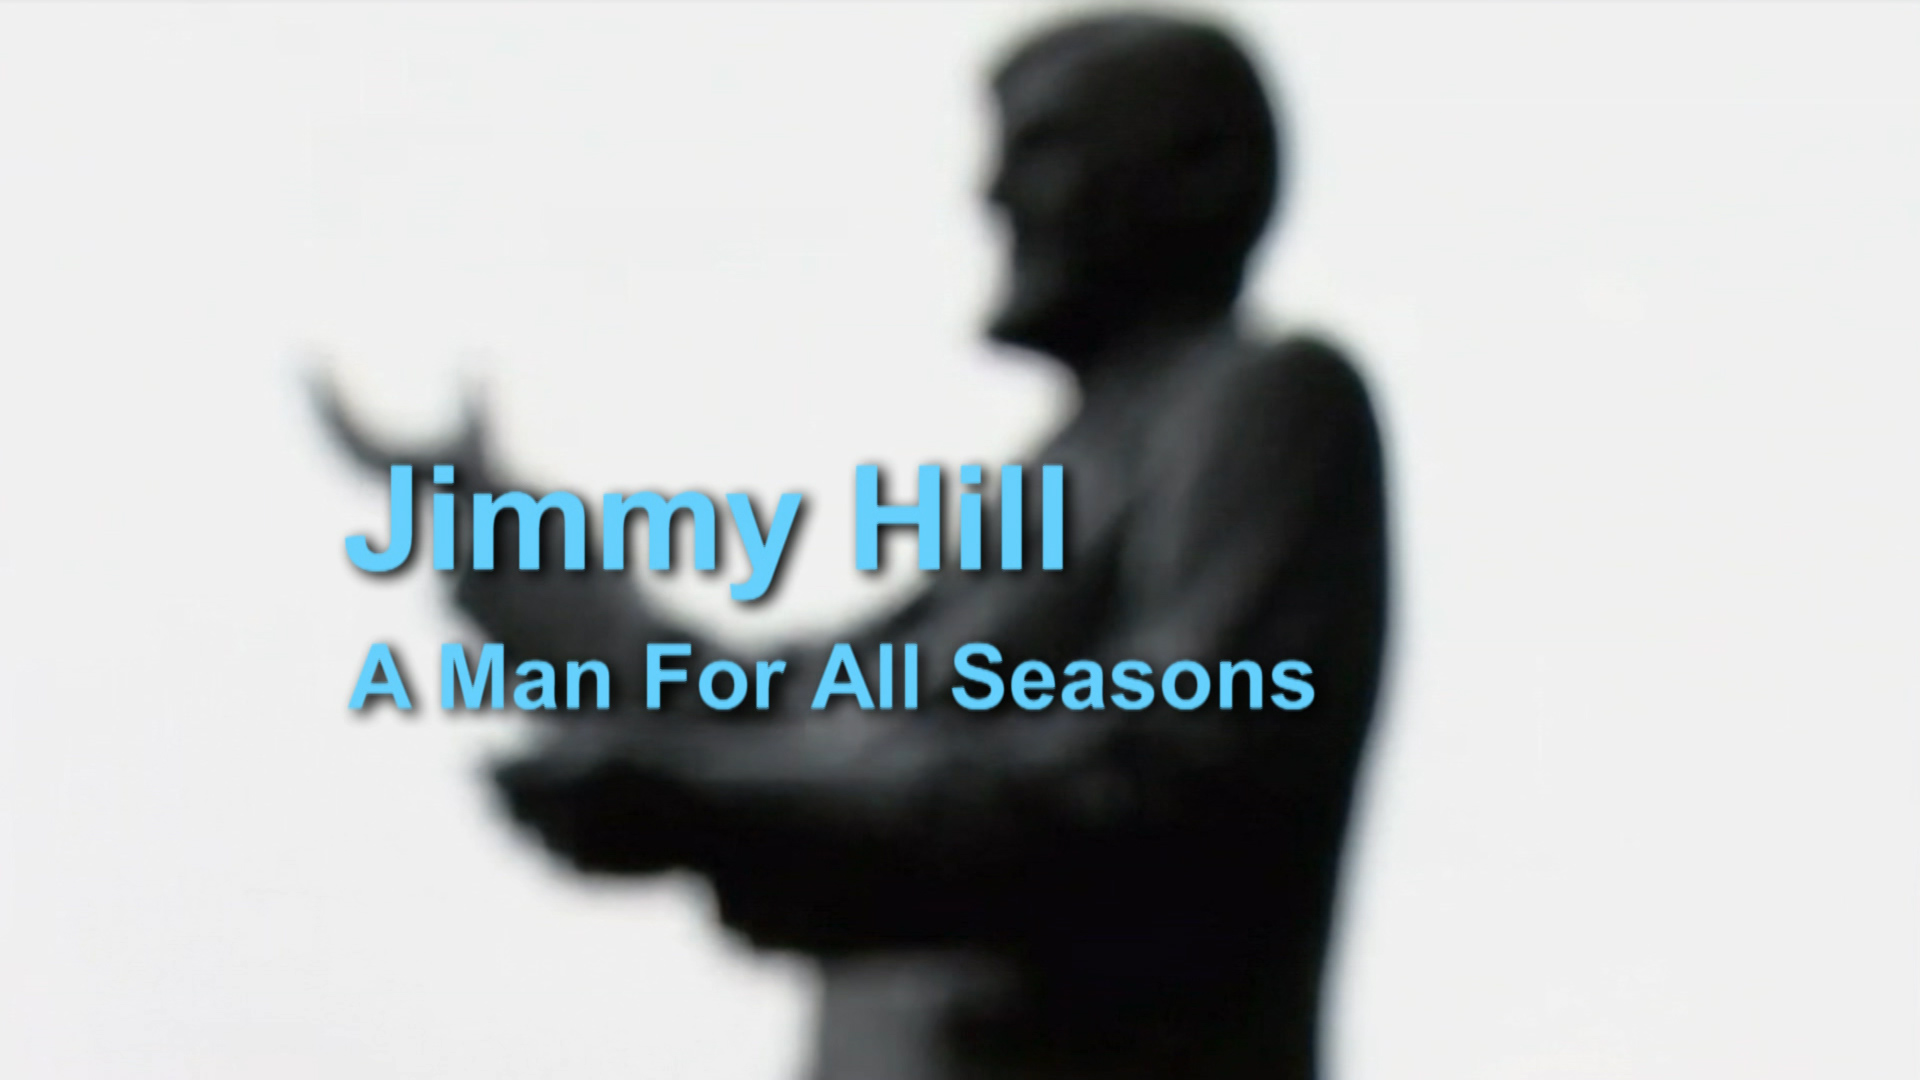 Jimmy Hill: A Man For All The Seasons - title card with backdrop of Jimmy Hill statue